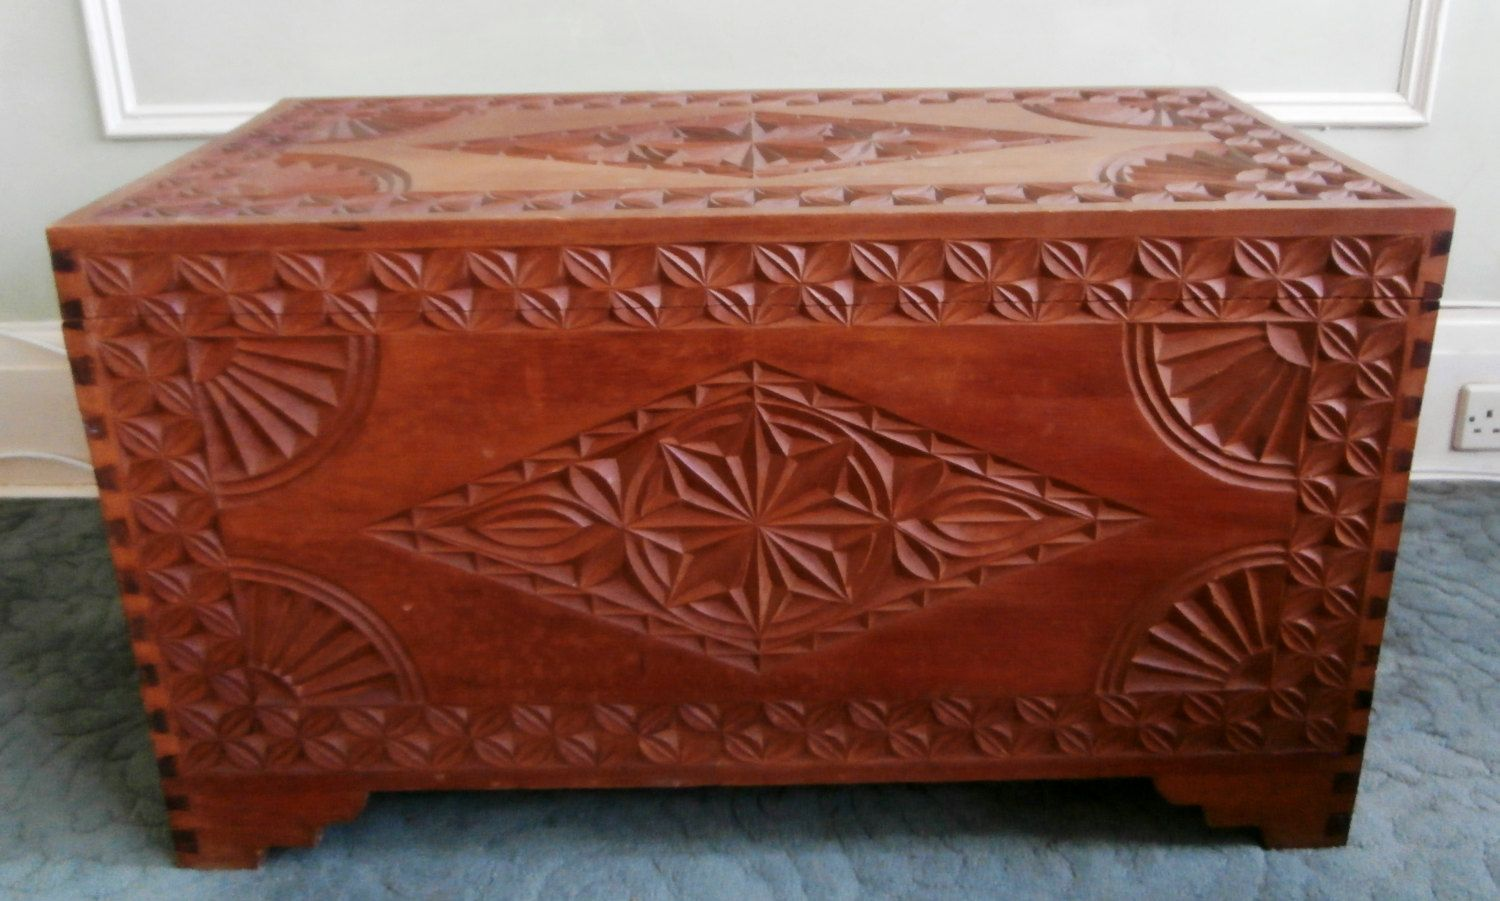 Antique Vintage Large Carved Wood Dowry Chest Trunk Blanket Box Storage Ottoman By Sbdvintage On Etsy